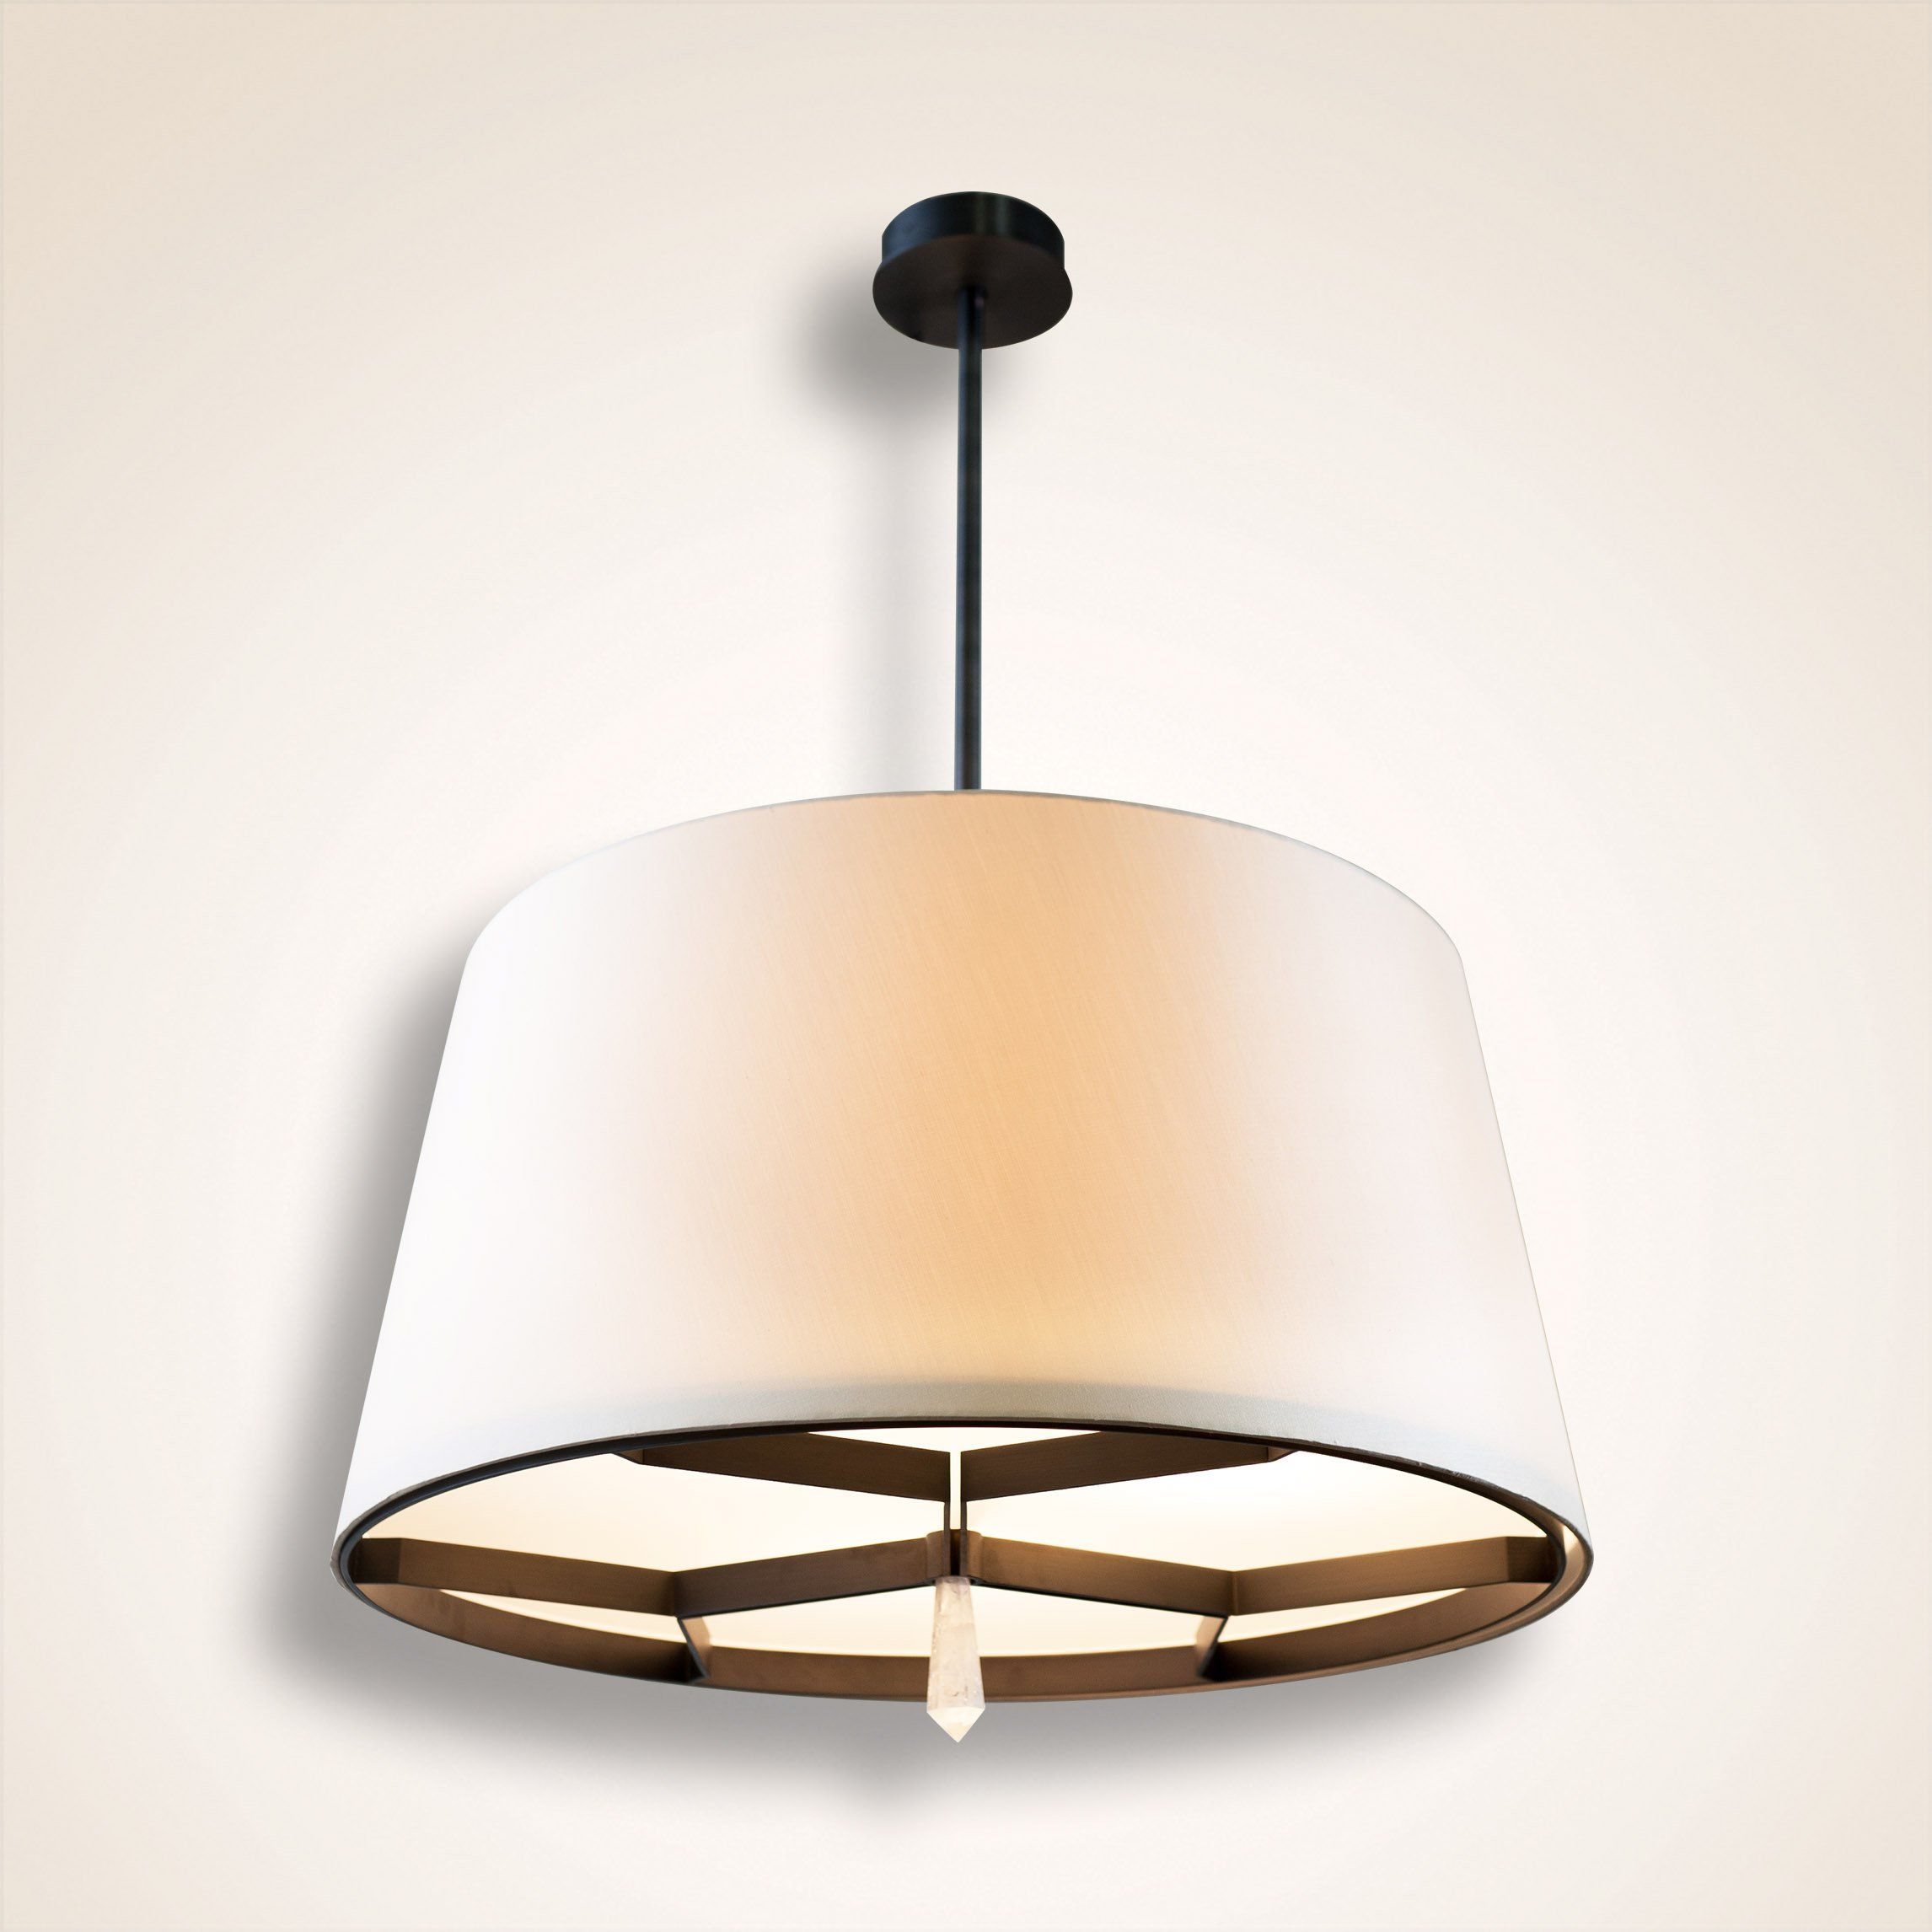 Istanbul S Fabric Shades Chandelier Lighting Chandeliers Transitional